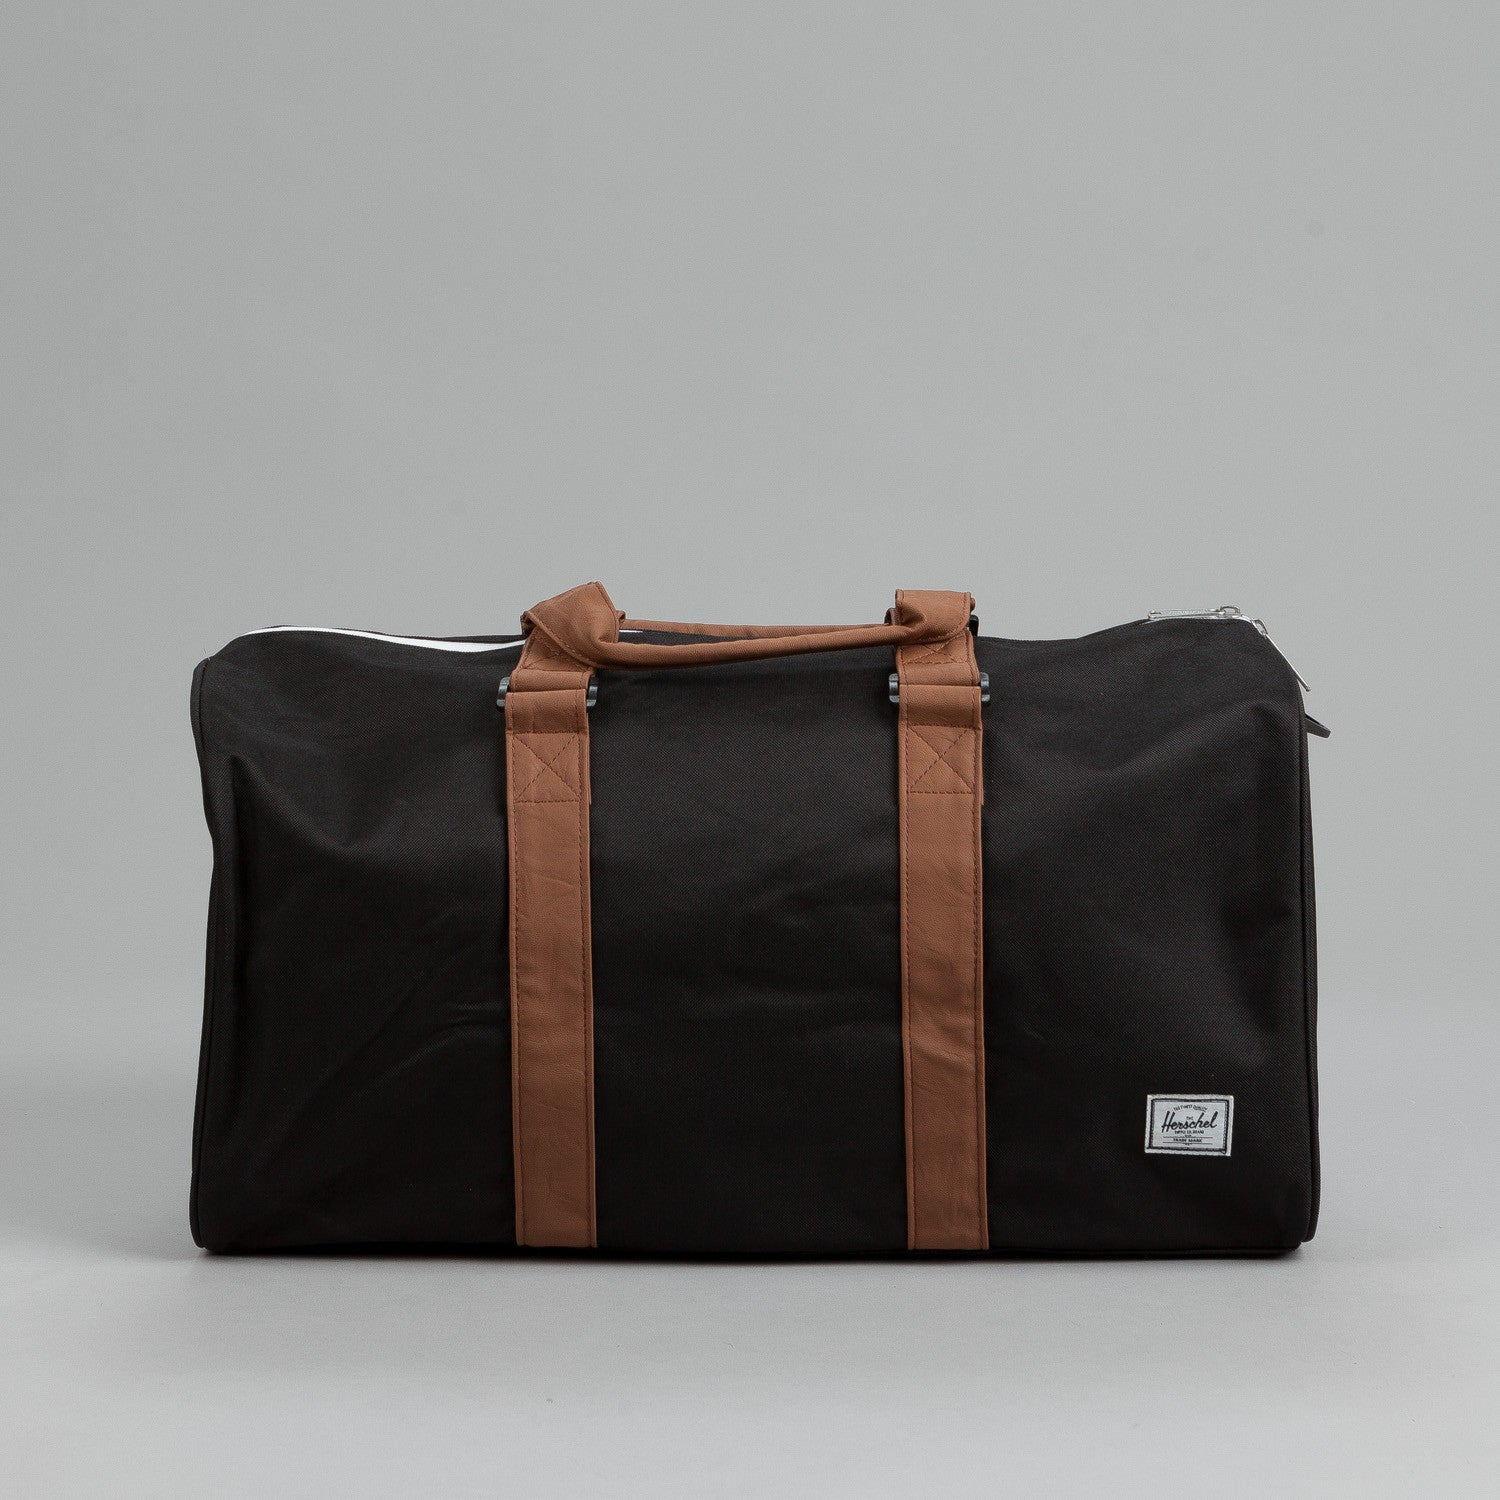 Herschel Ravine Duffel Bag Black / Tan